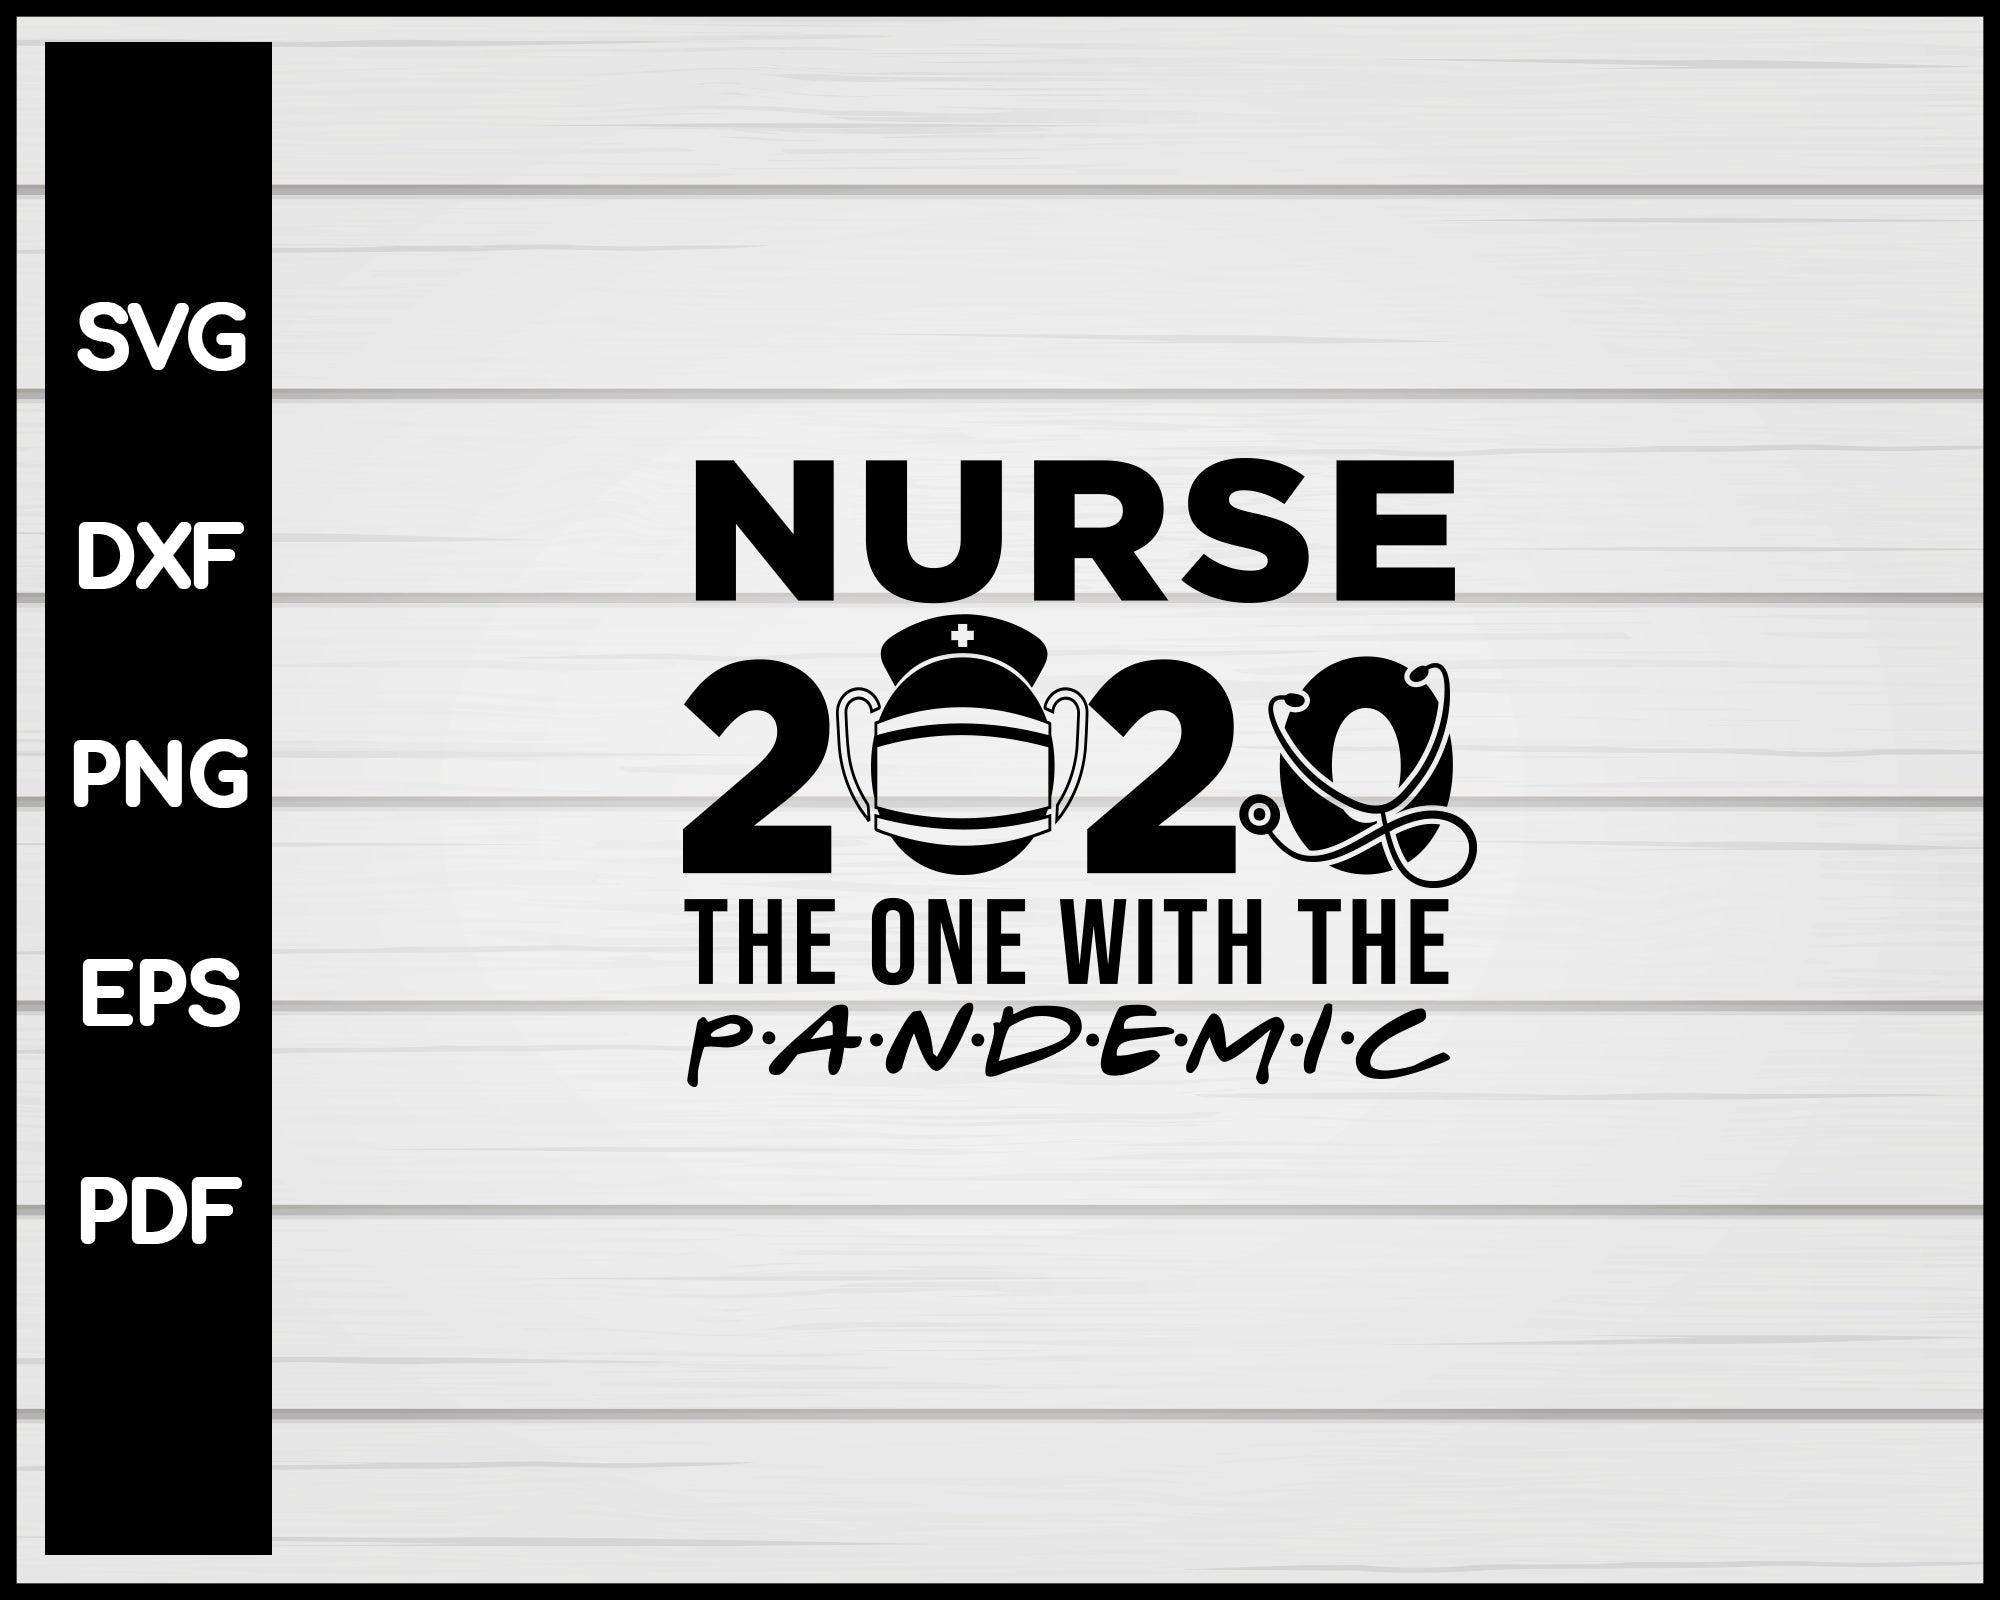 Nurse 2020 The One With The Pandemic svg Cut File For Cricut Silhouette eps png dxf Printable Files